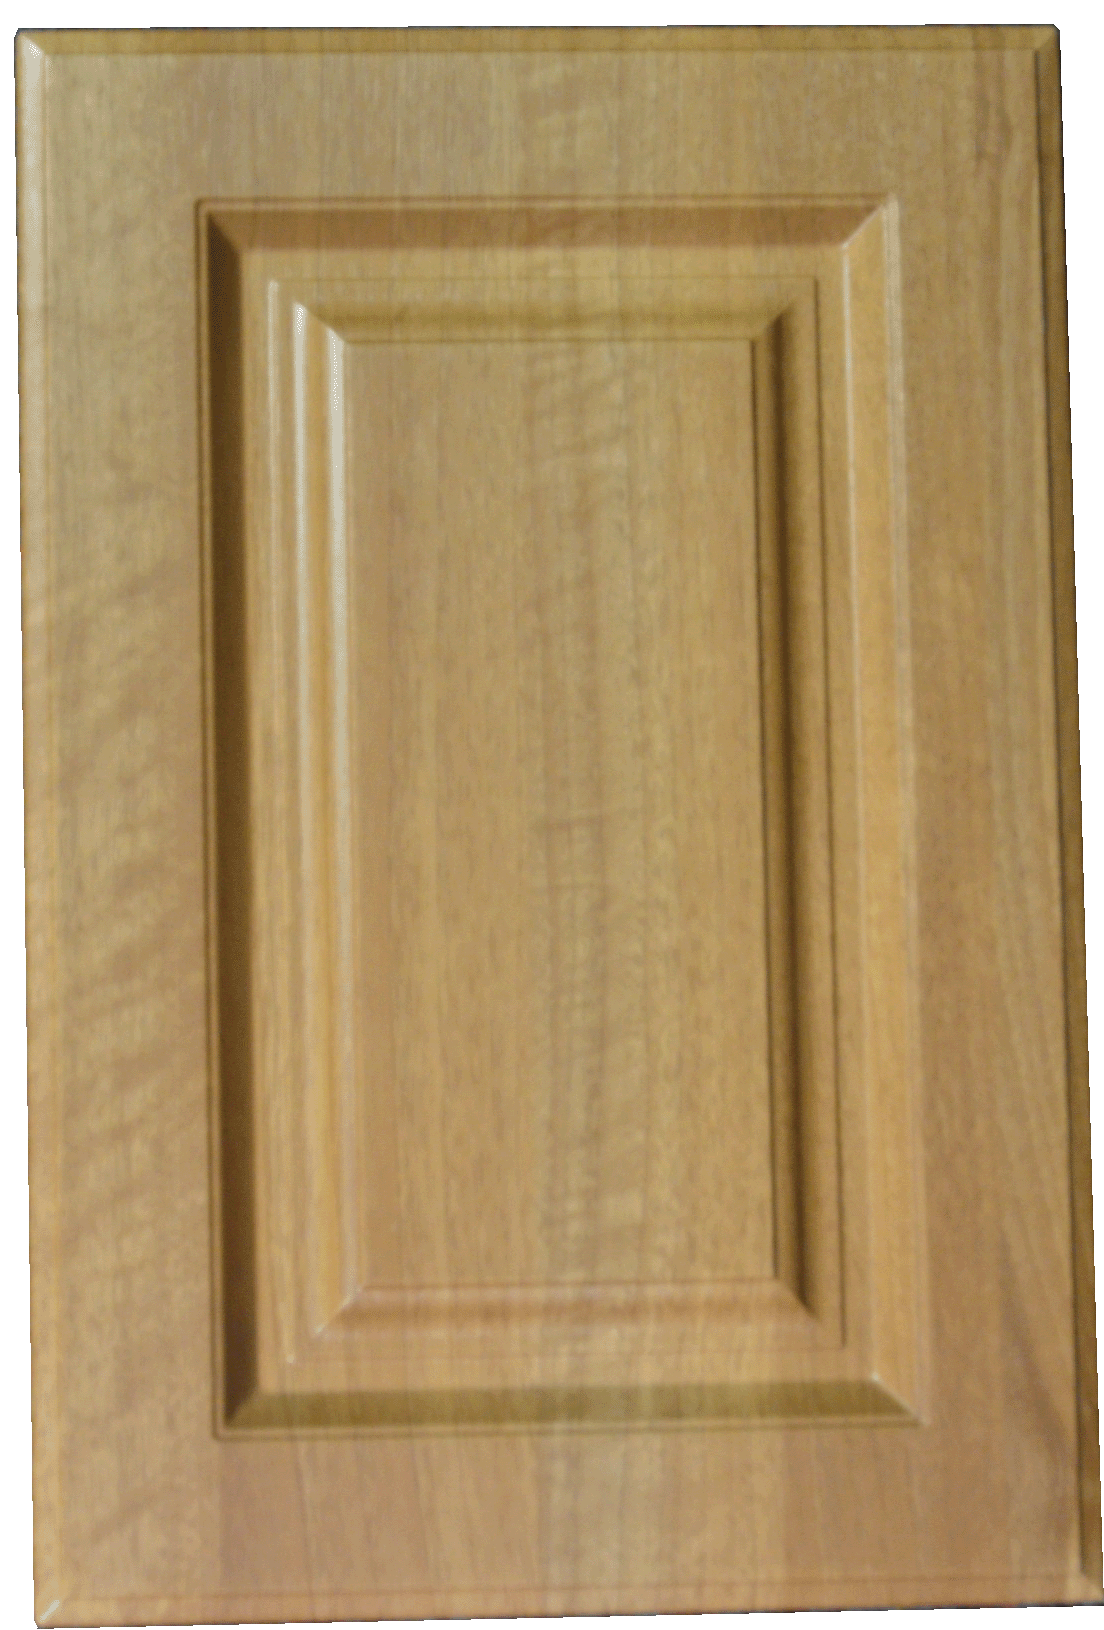 kitchen cabinet door manufacturers with Membrane Thermofoil Presses on wellborn moreover Best Outdoor Summer Kitchen Cabi s Melbourne Fl further Appliance likewise Interior4 besides Aluminum Wardrobe.